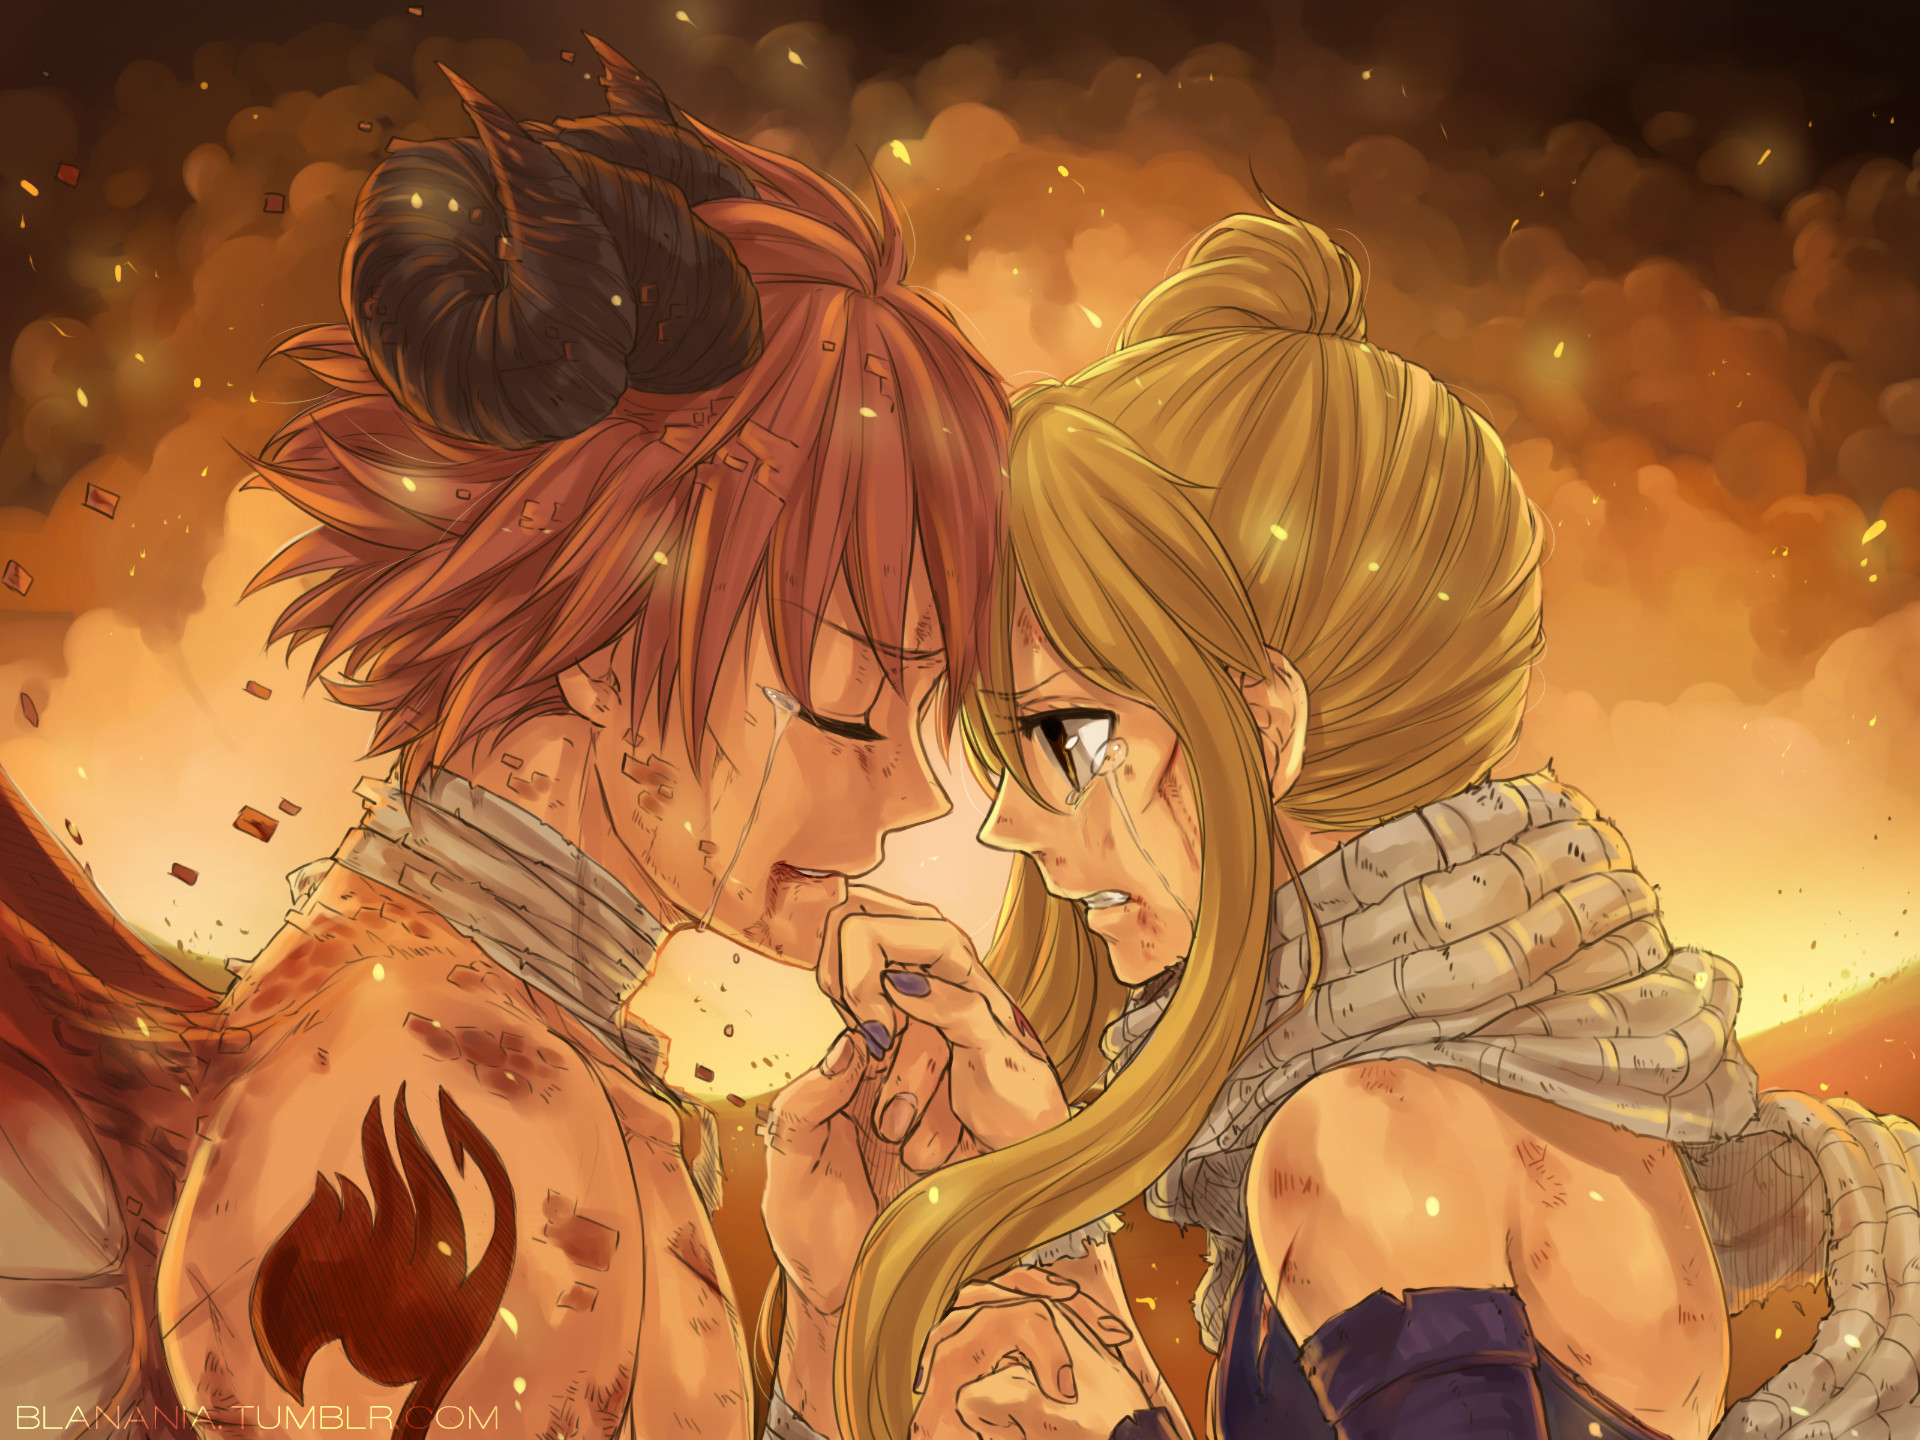 1920x1440 Anime - Fairy Tail NaLu (Fairy Tail) Natsu Dragneel Lucy Heartfilia  Wallpaper